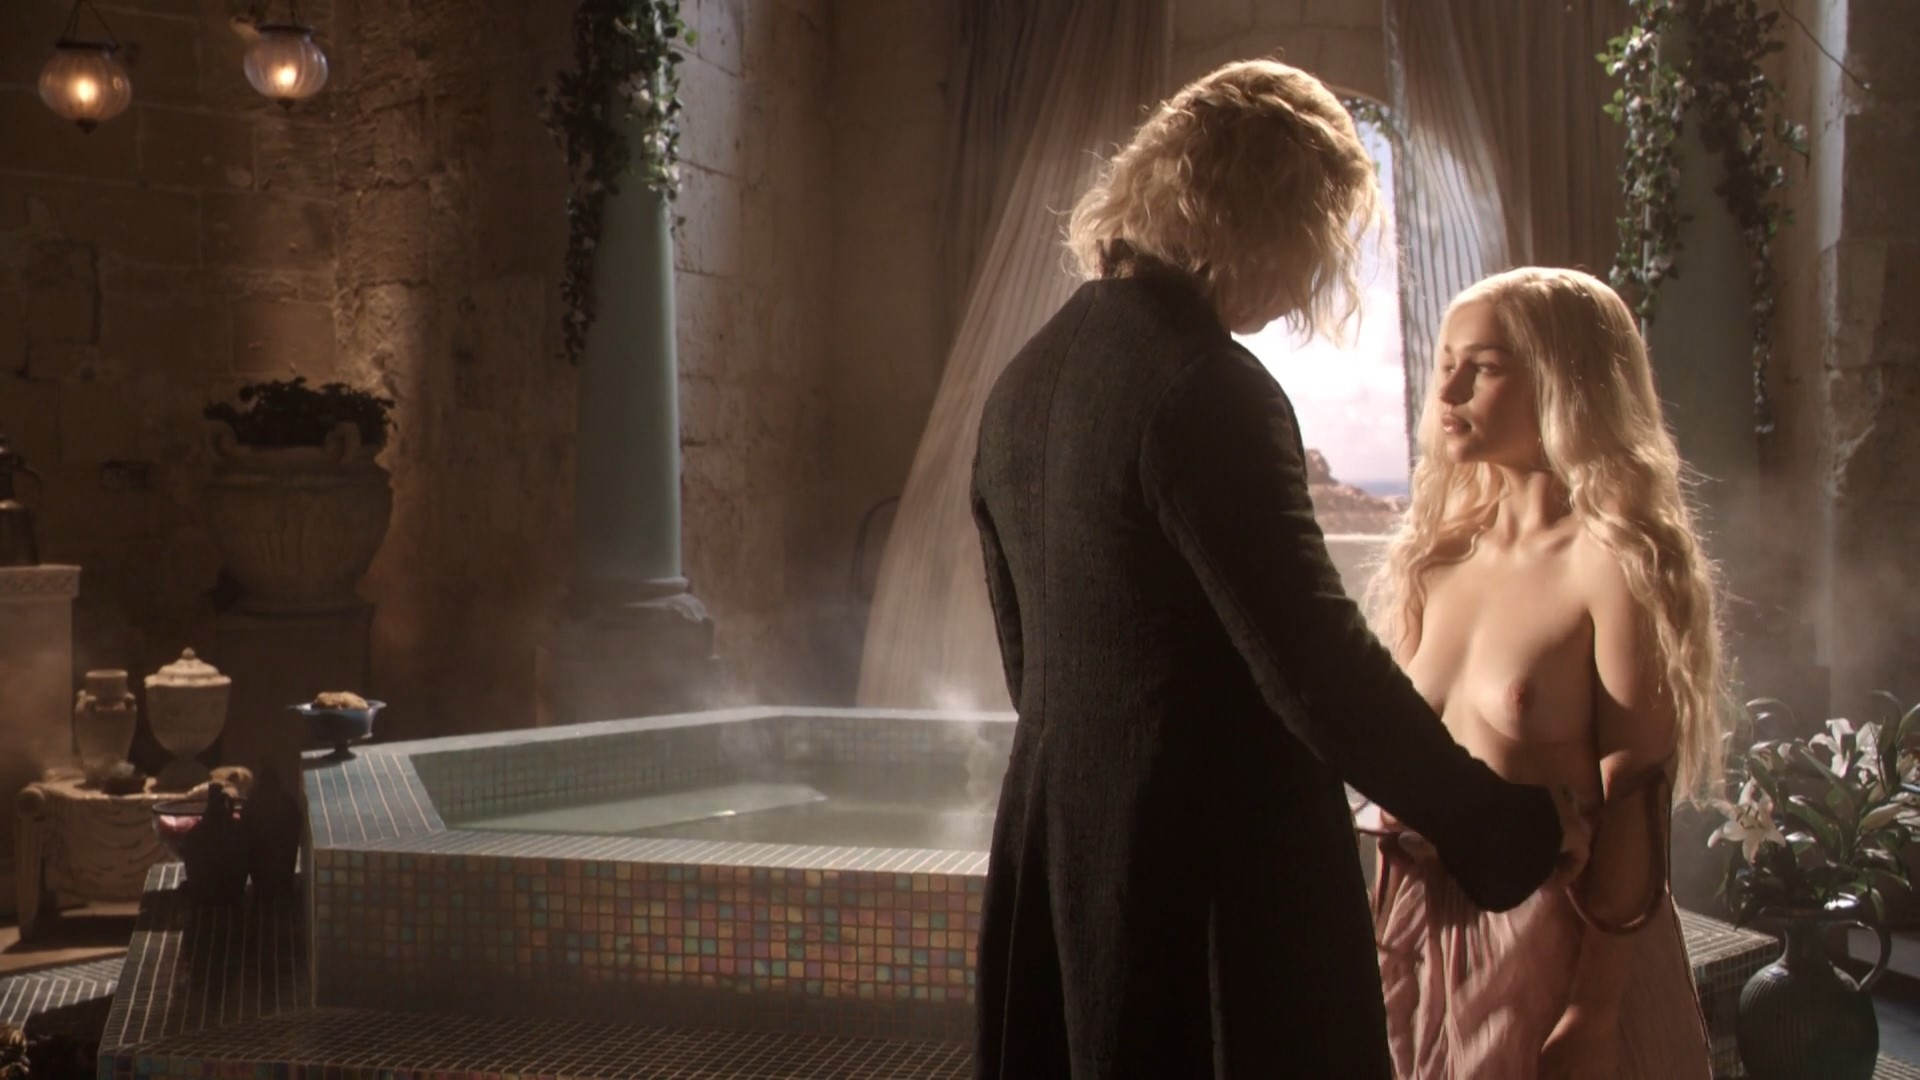 Emilia clarke nude game of thrones 2011 s01 hd nude (42 photos), Hot Celebrity picture